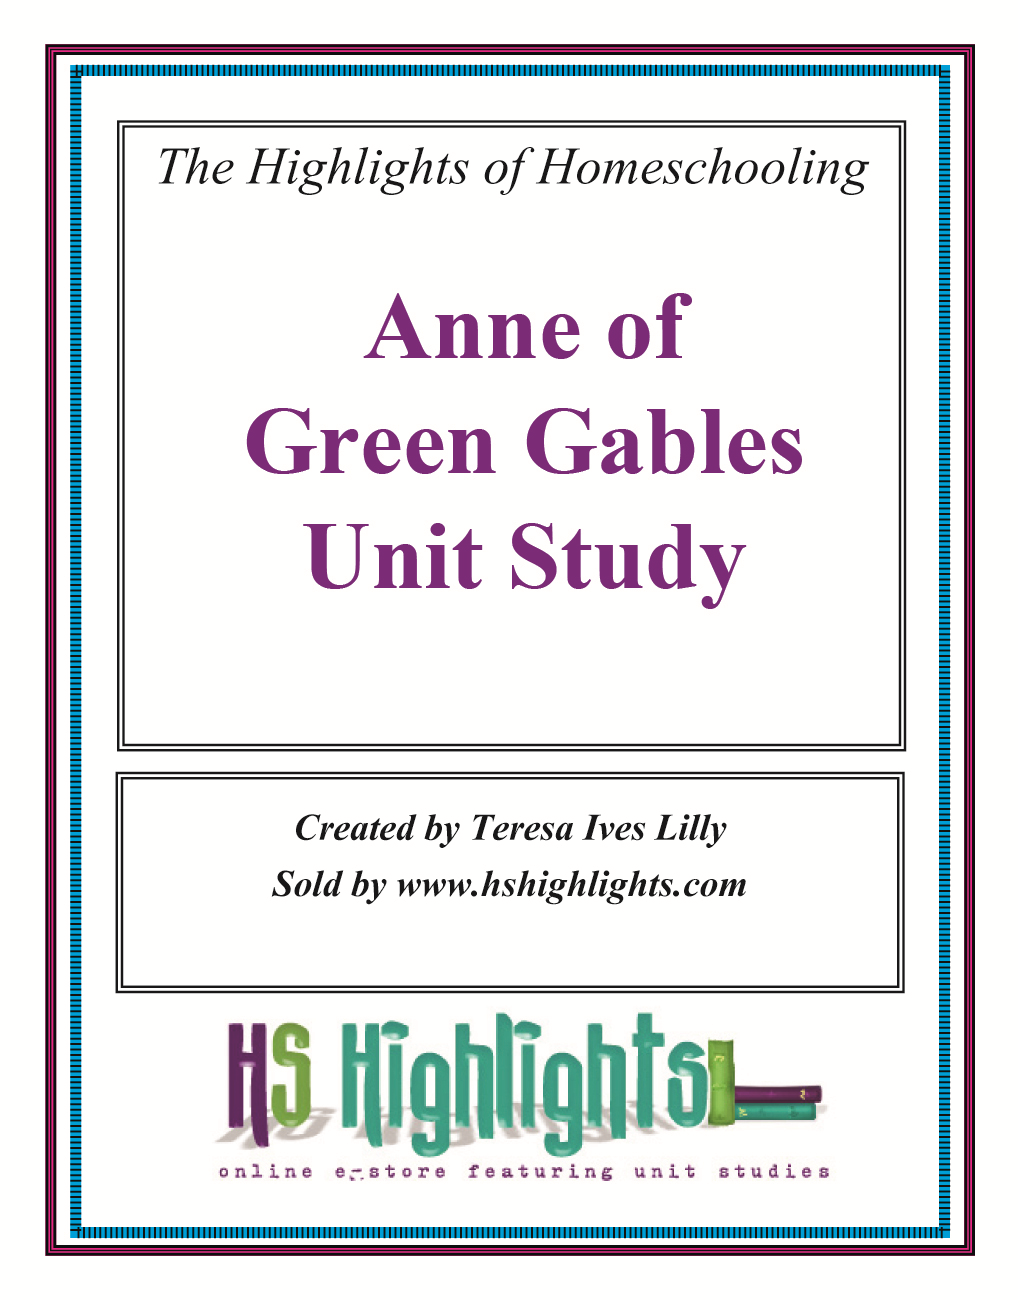 Anne of Green Gables Literature Unit Study By: Teresa Lilly